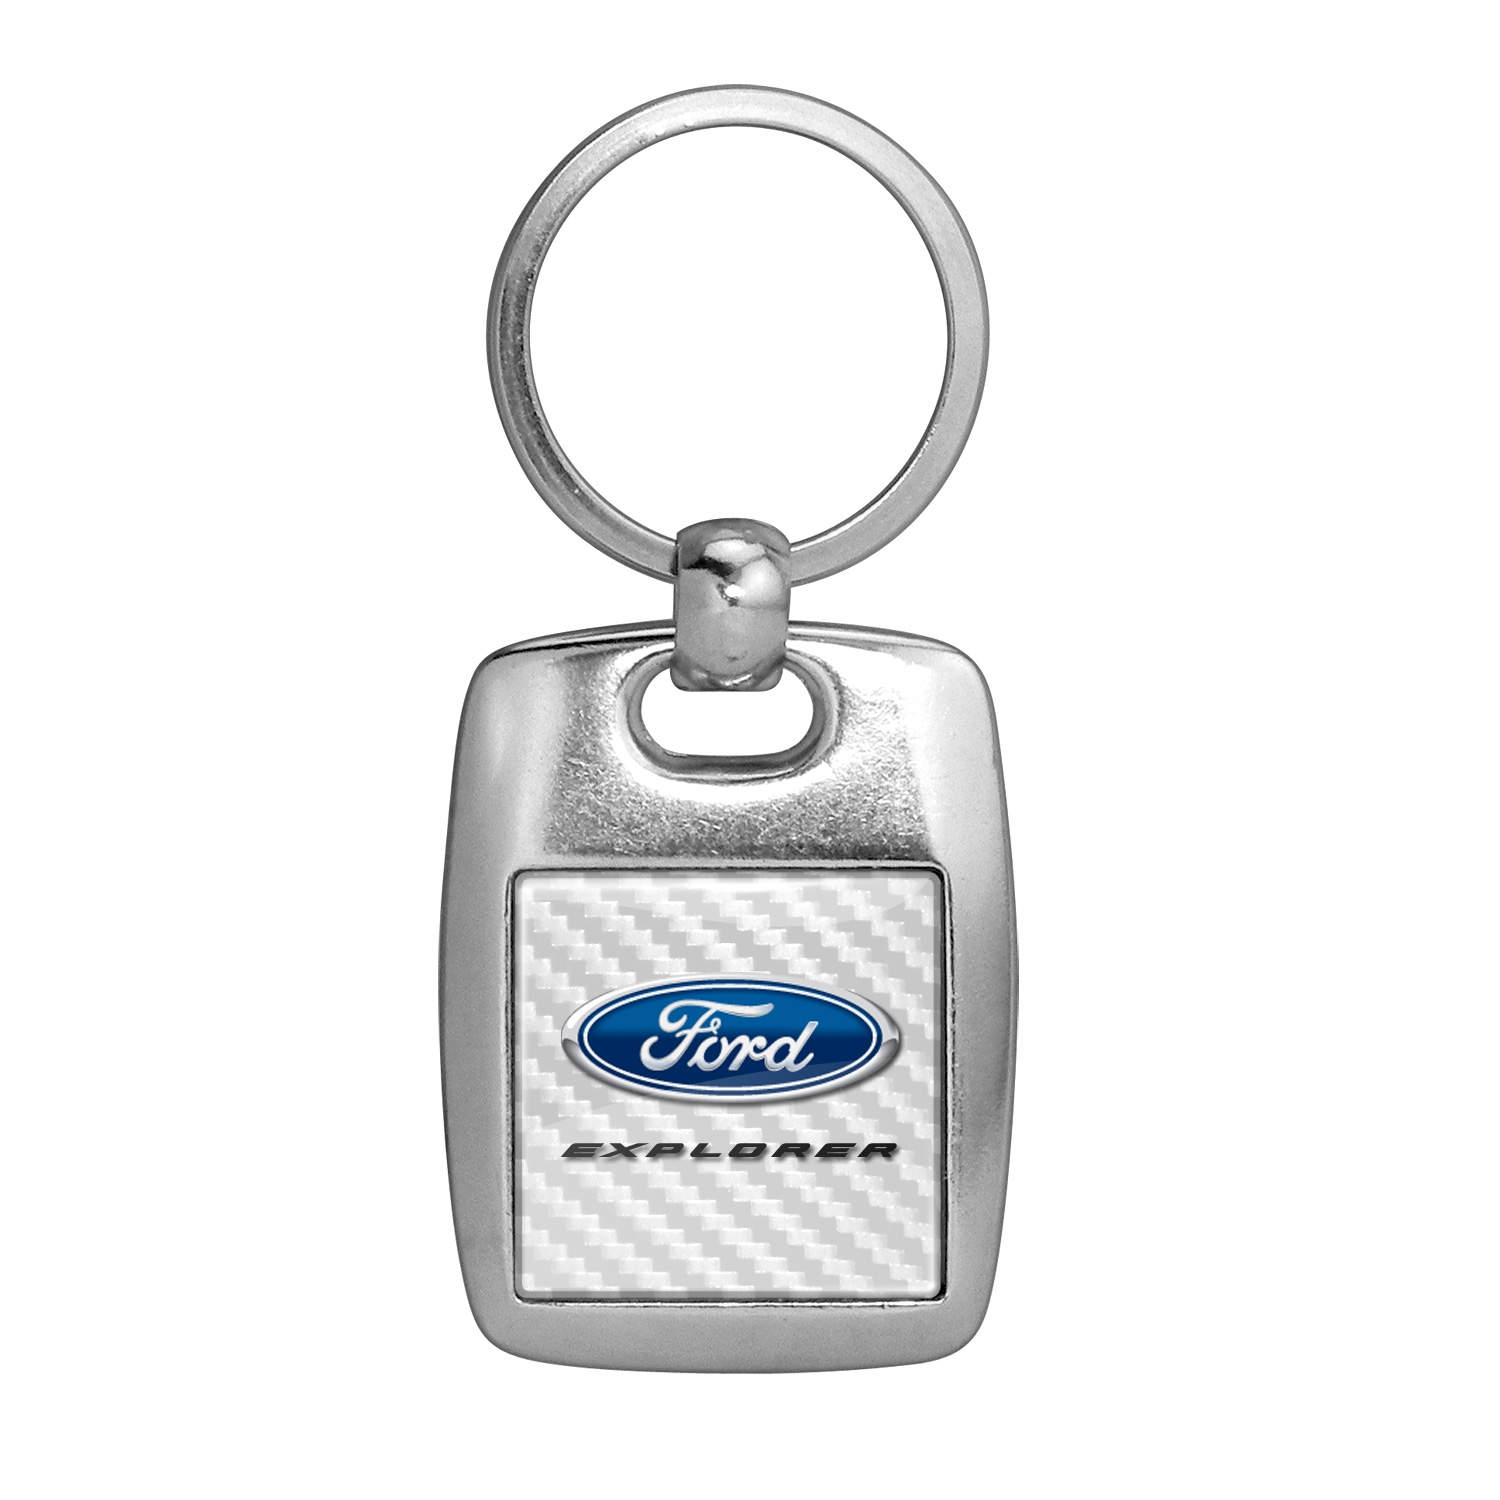 Ford Explorer White Carbon Fiber Backing Brush Metal Key Chain